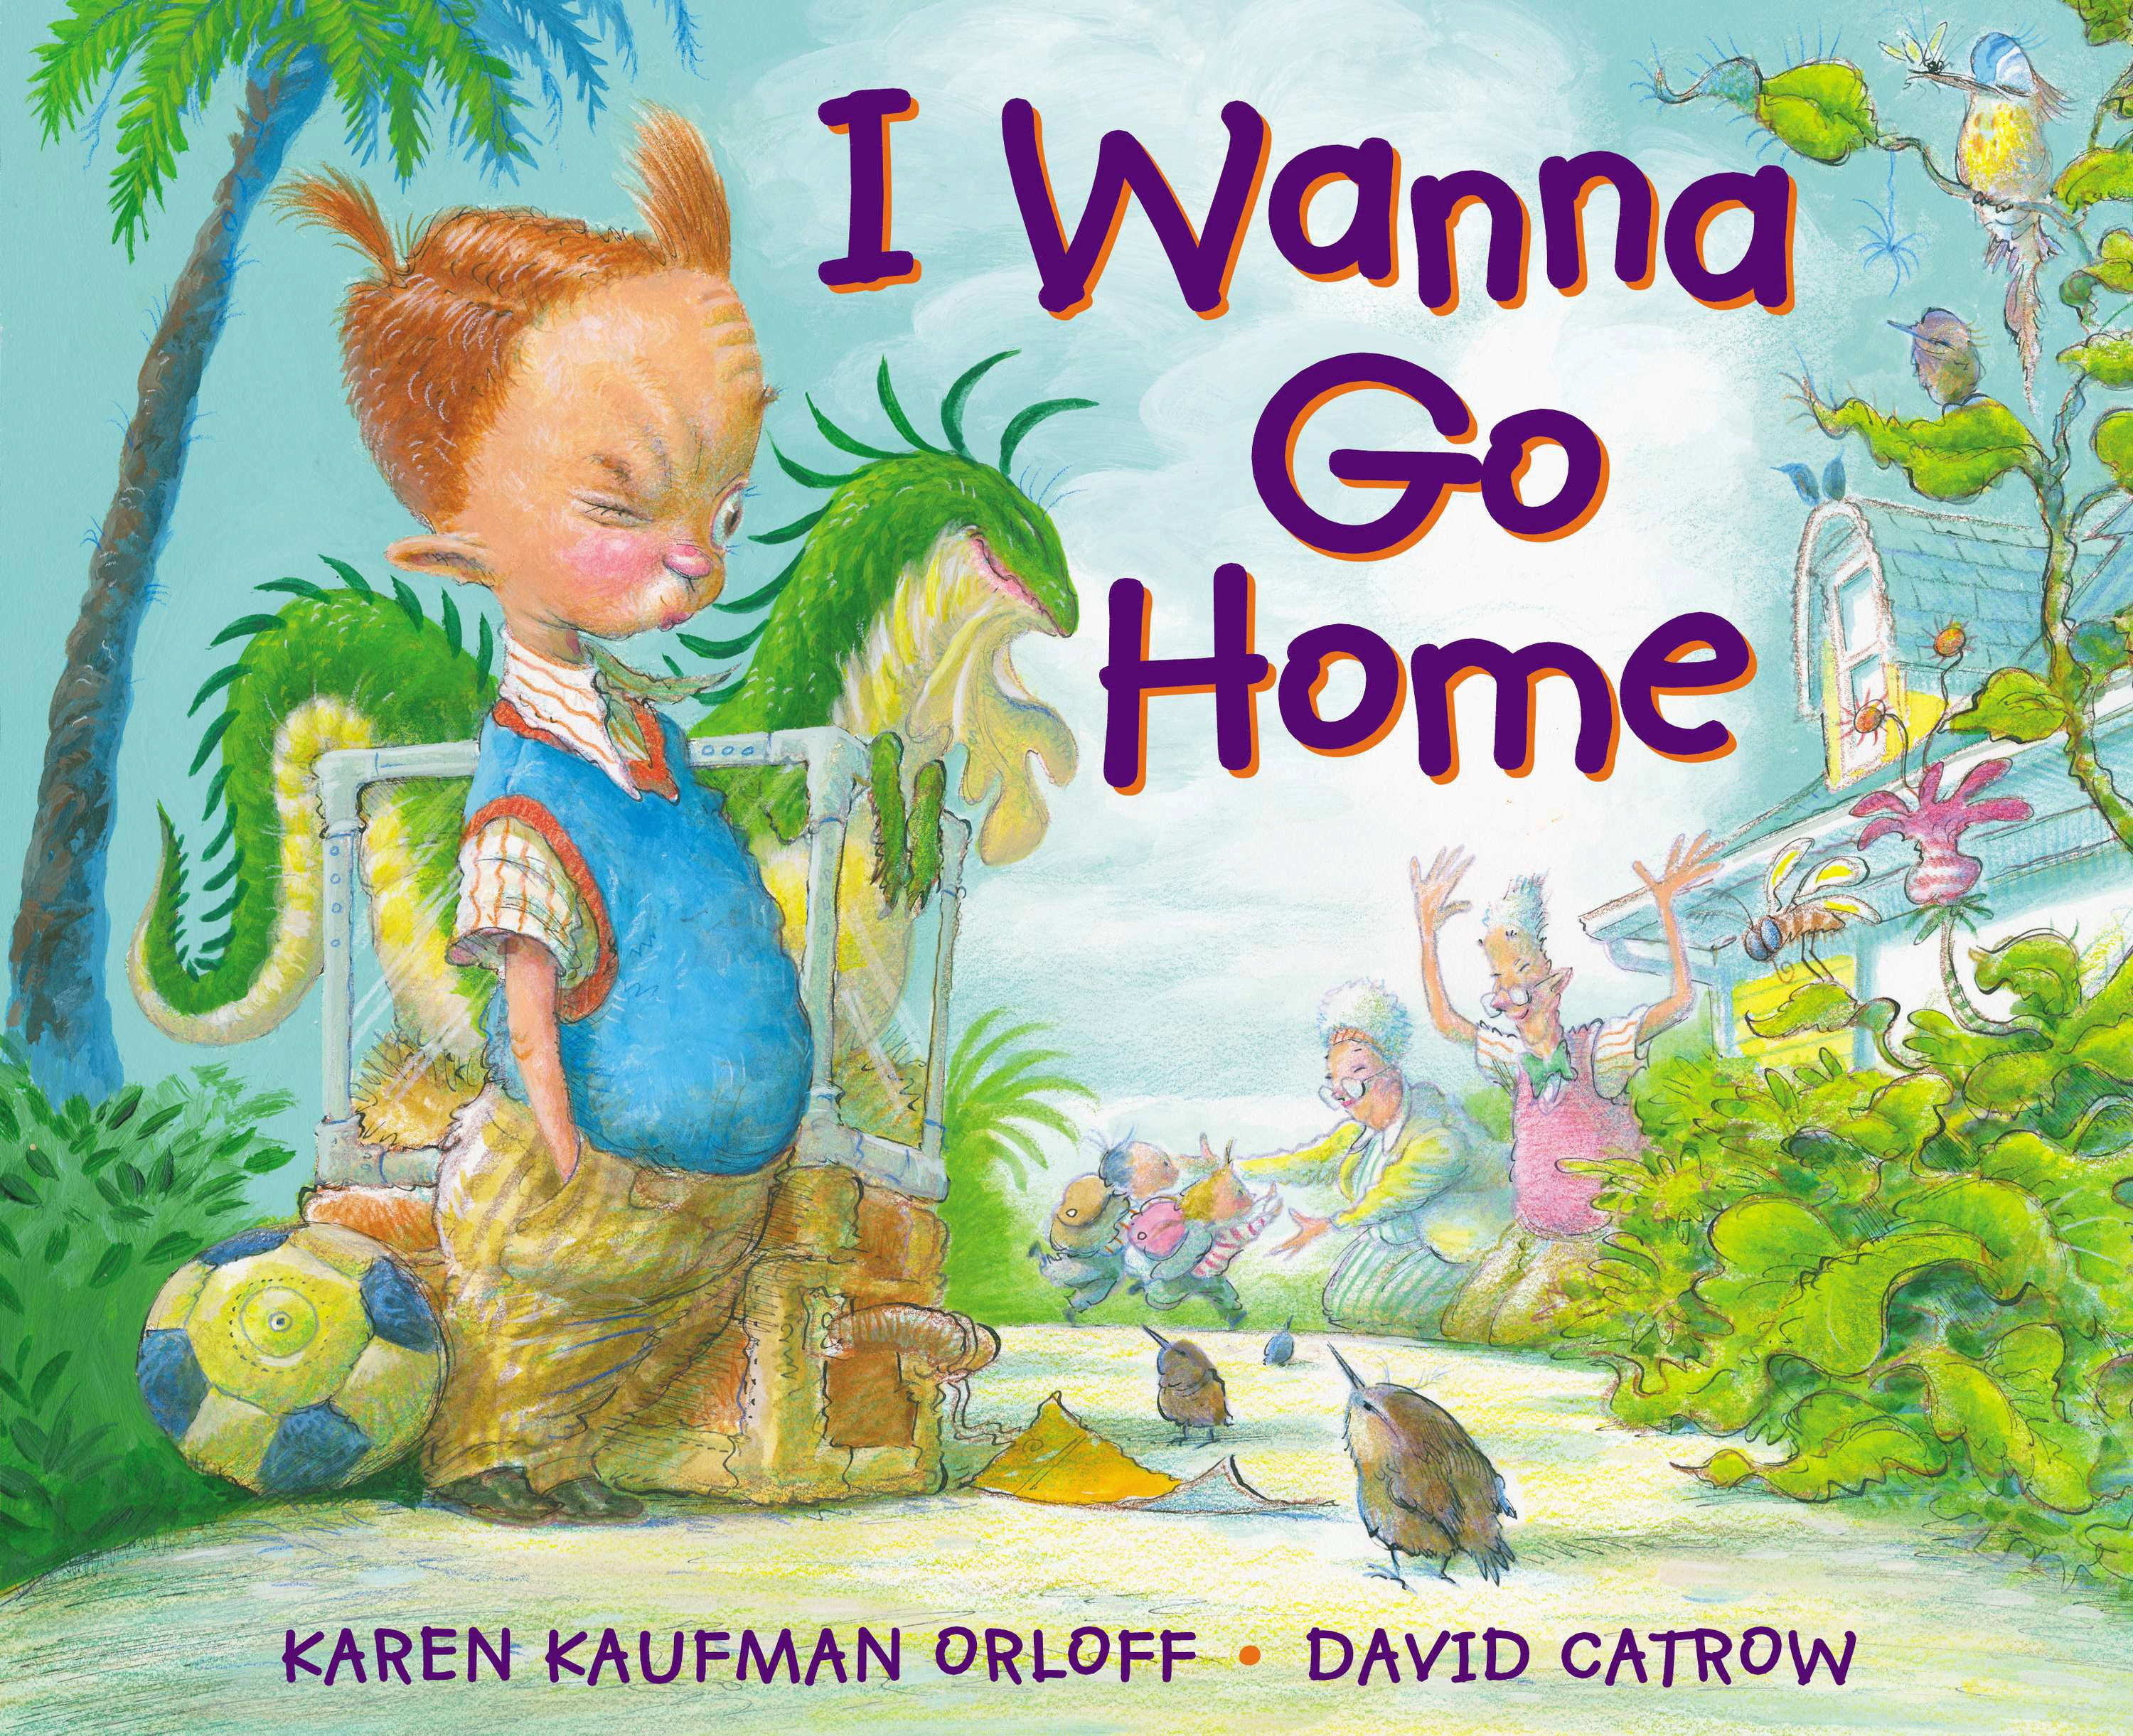 I Wanna Go Home book cover